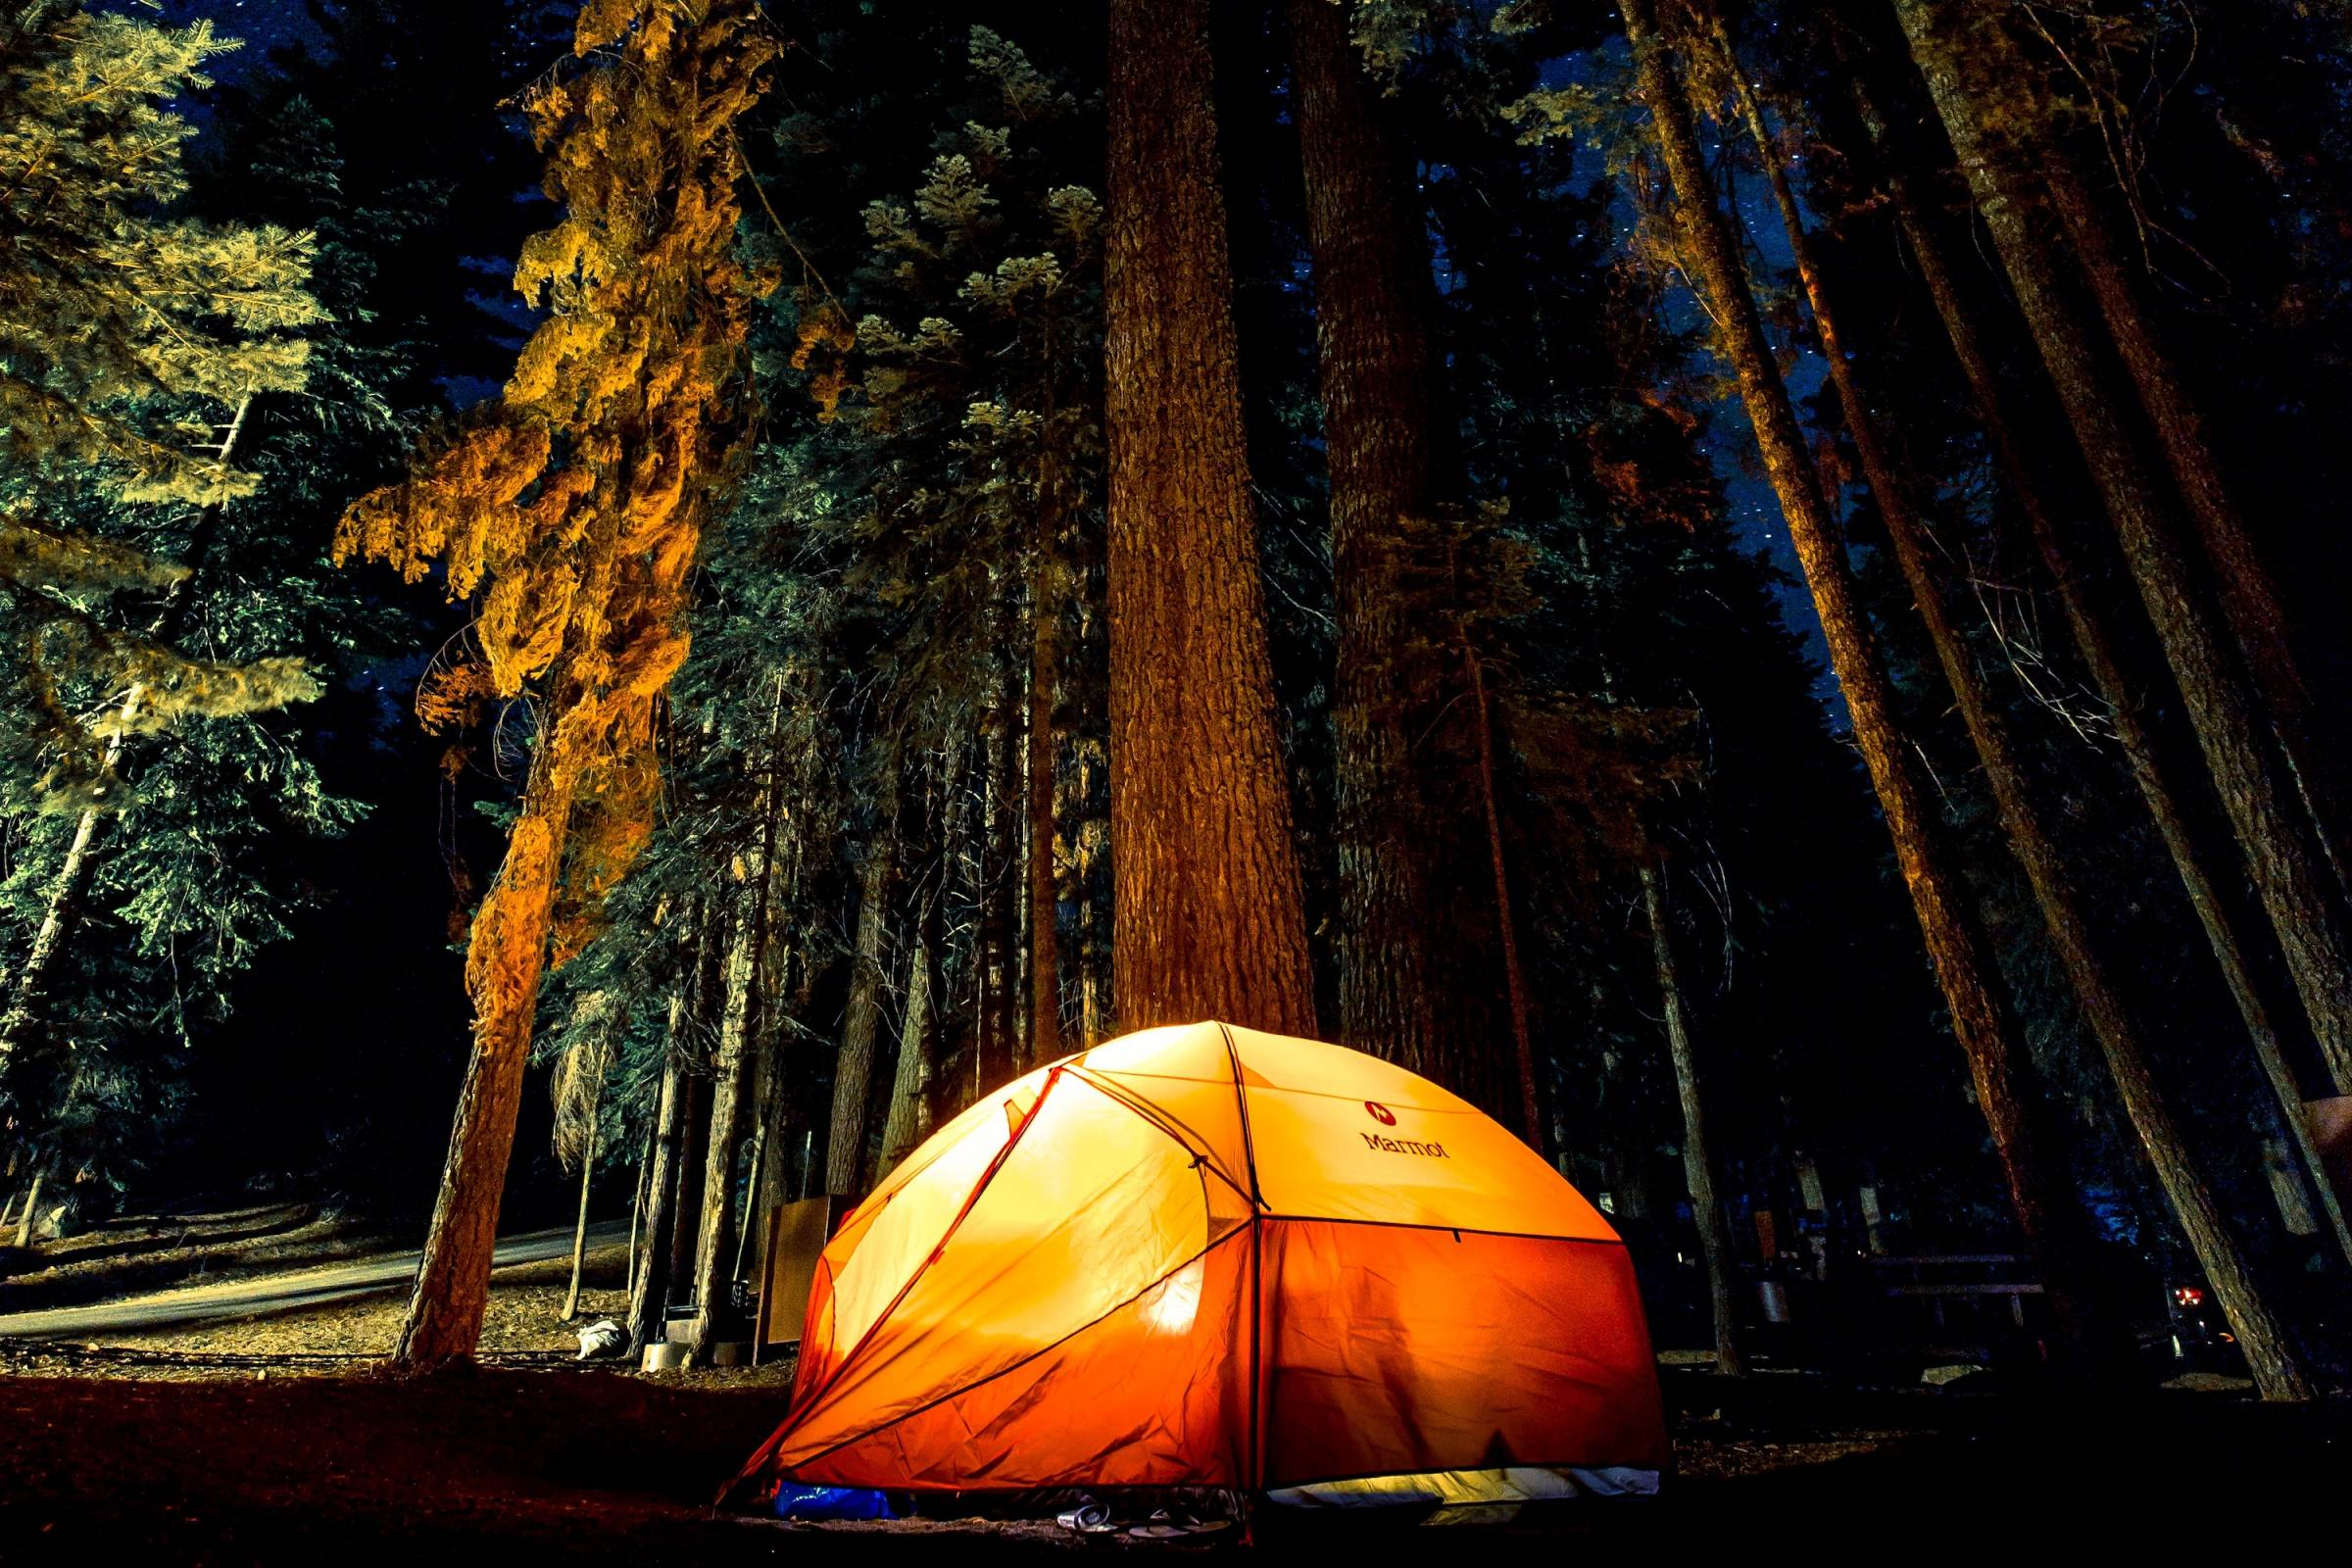 orange tent glowing in forest at night